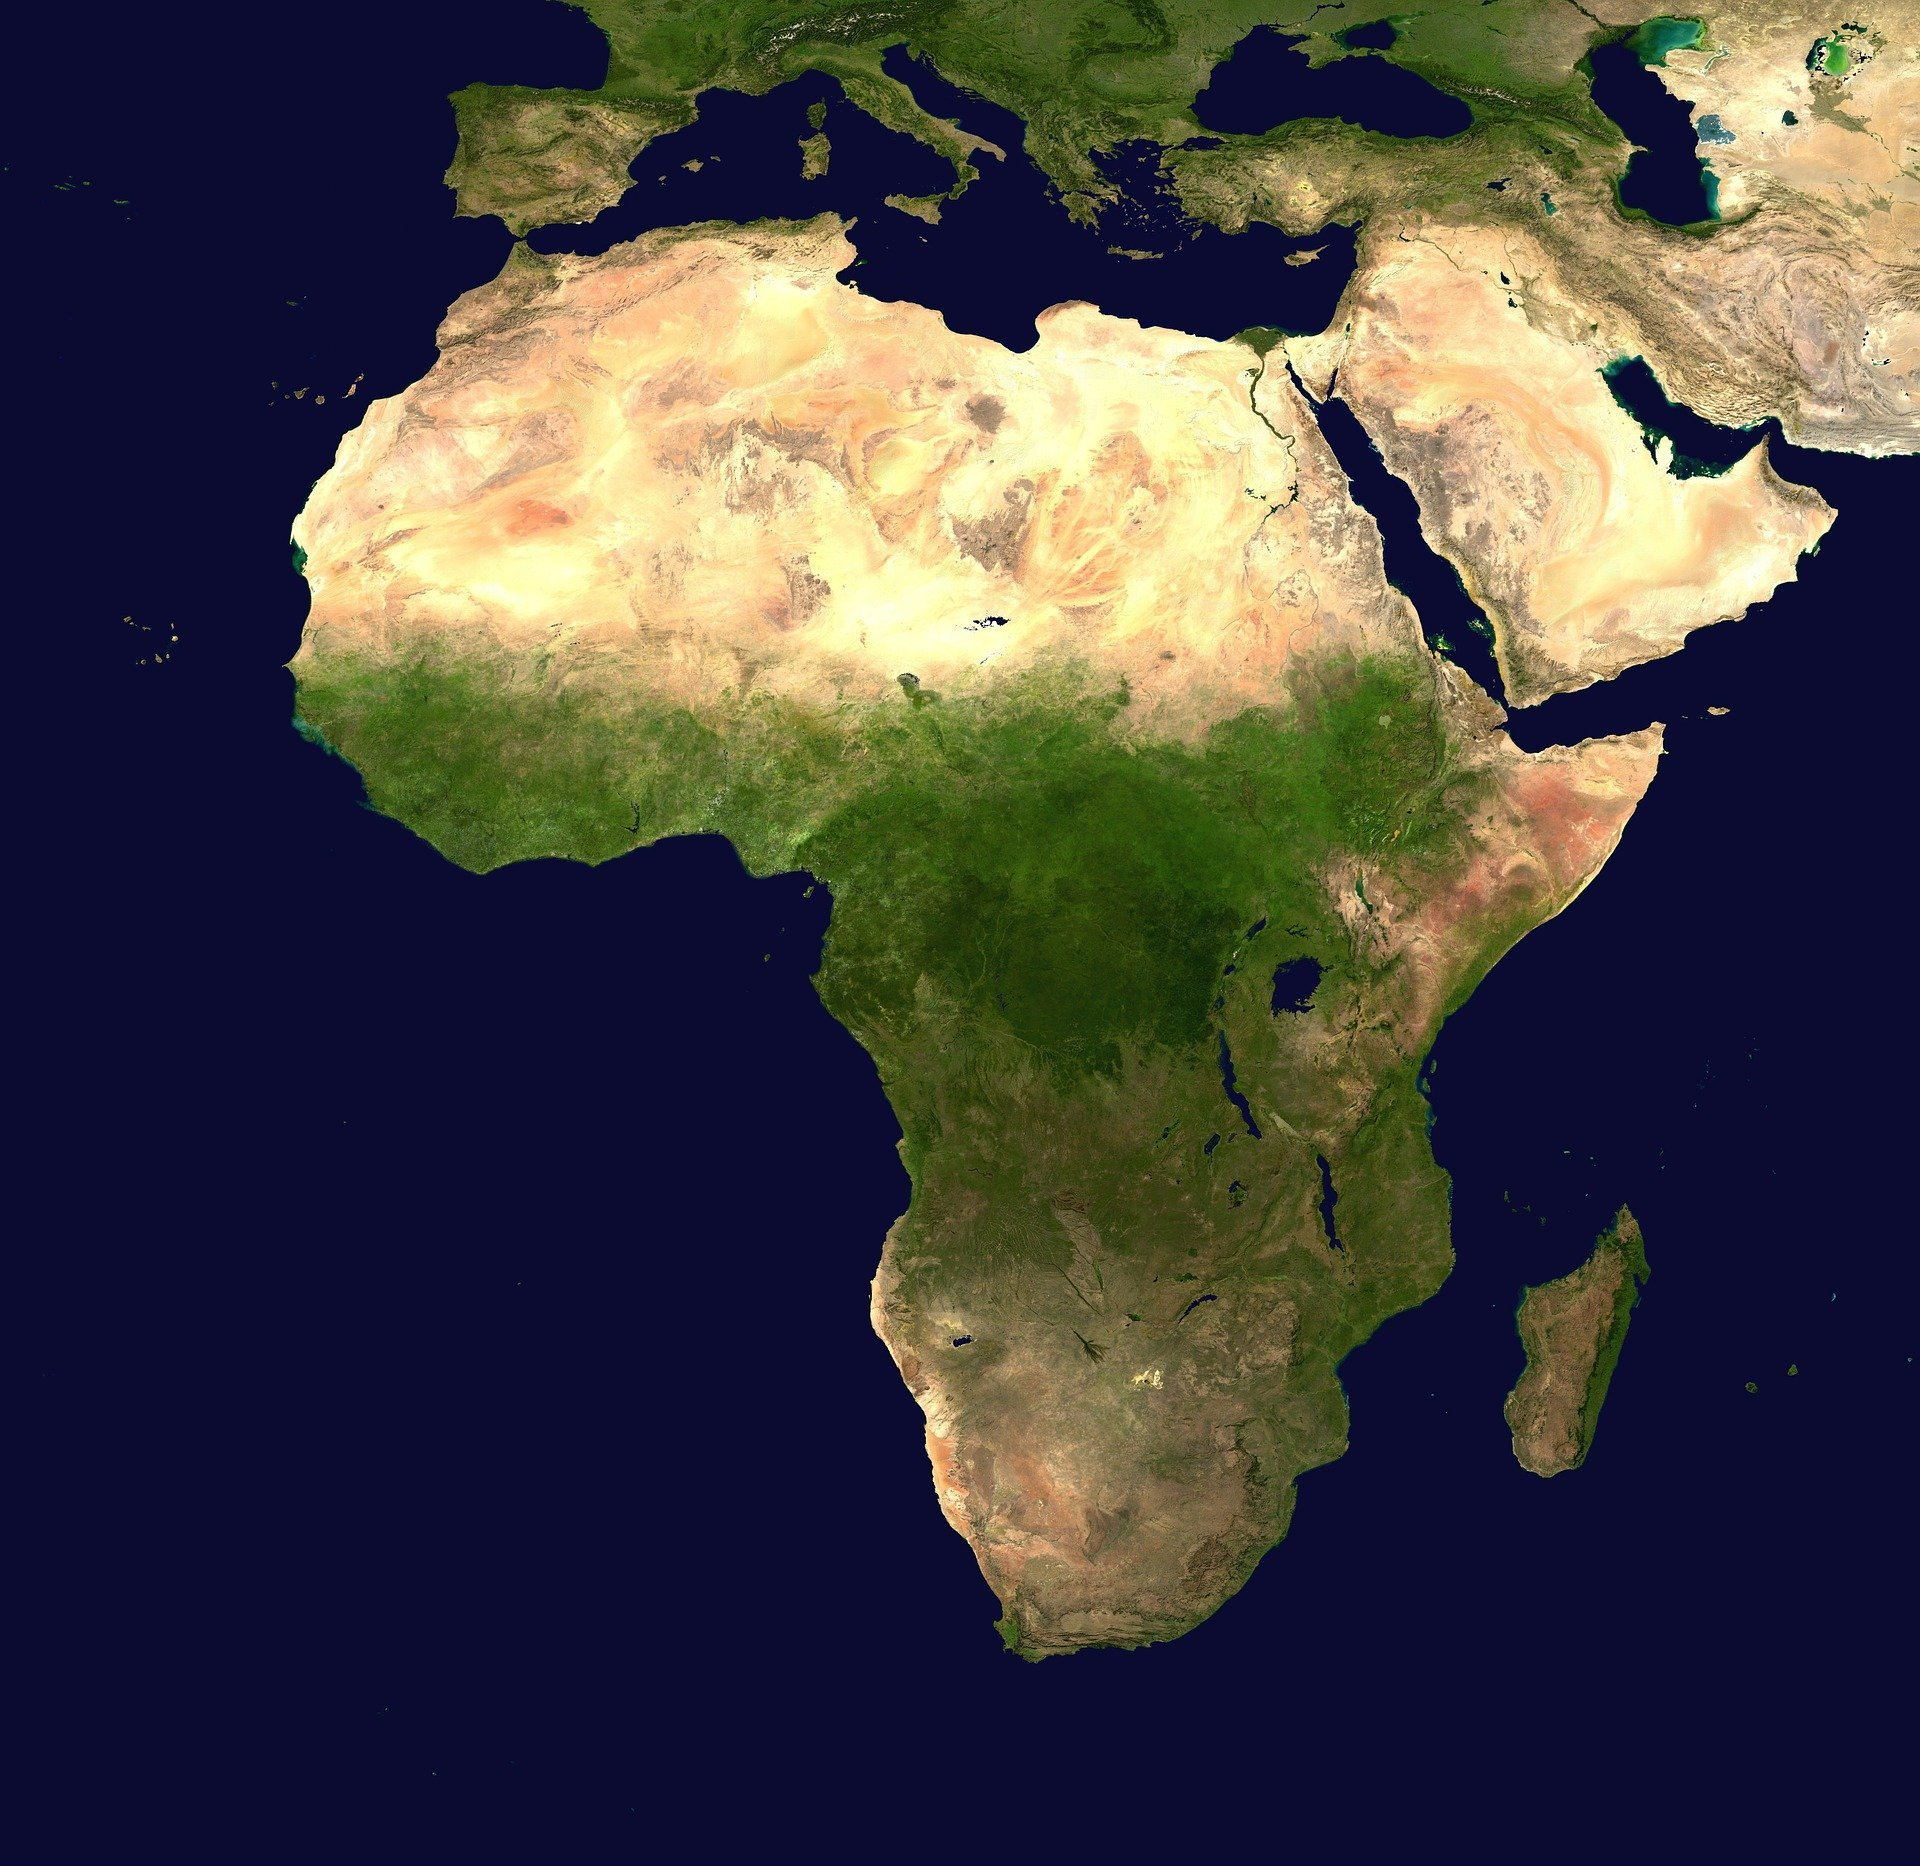 Africa's tech adoption on the rise: Africa is going green on technology adoption